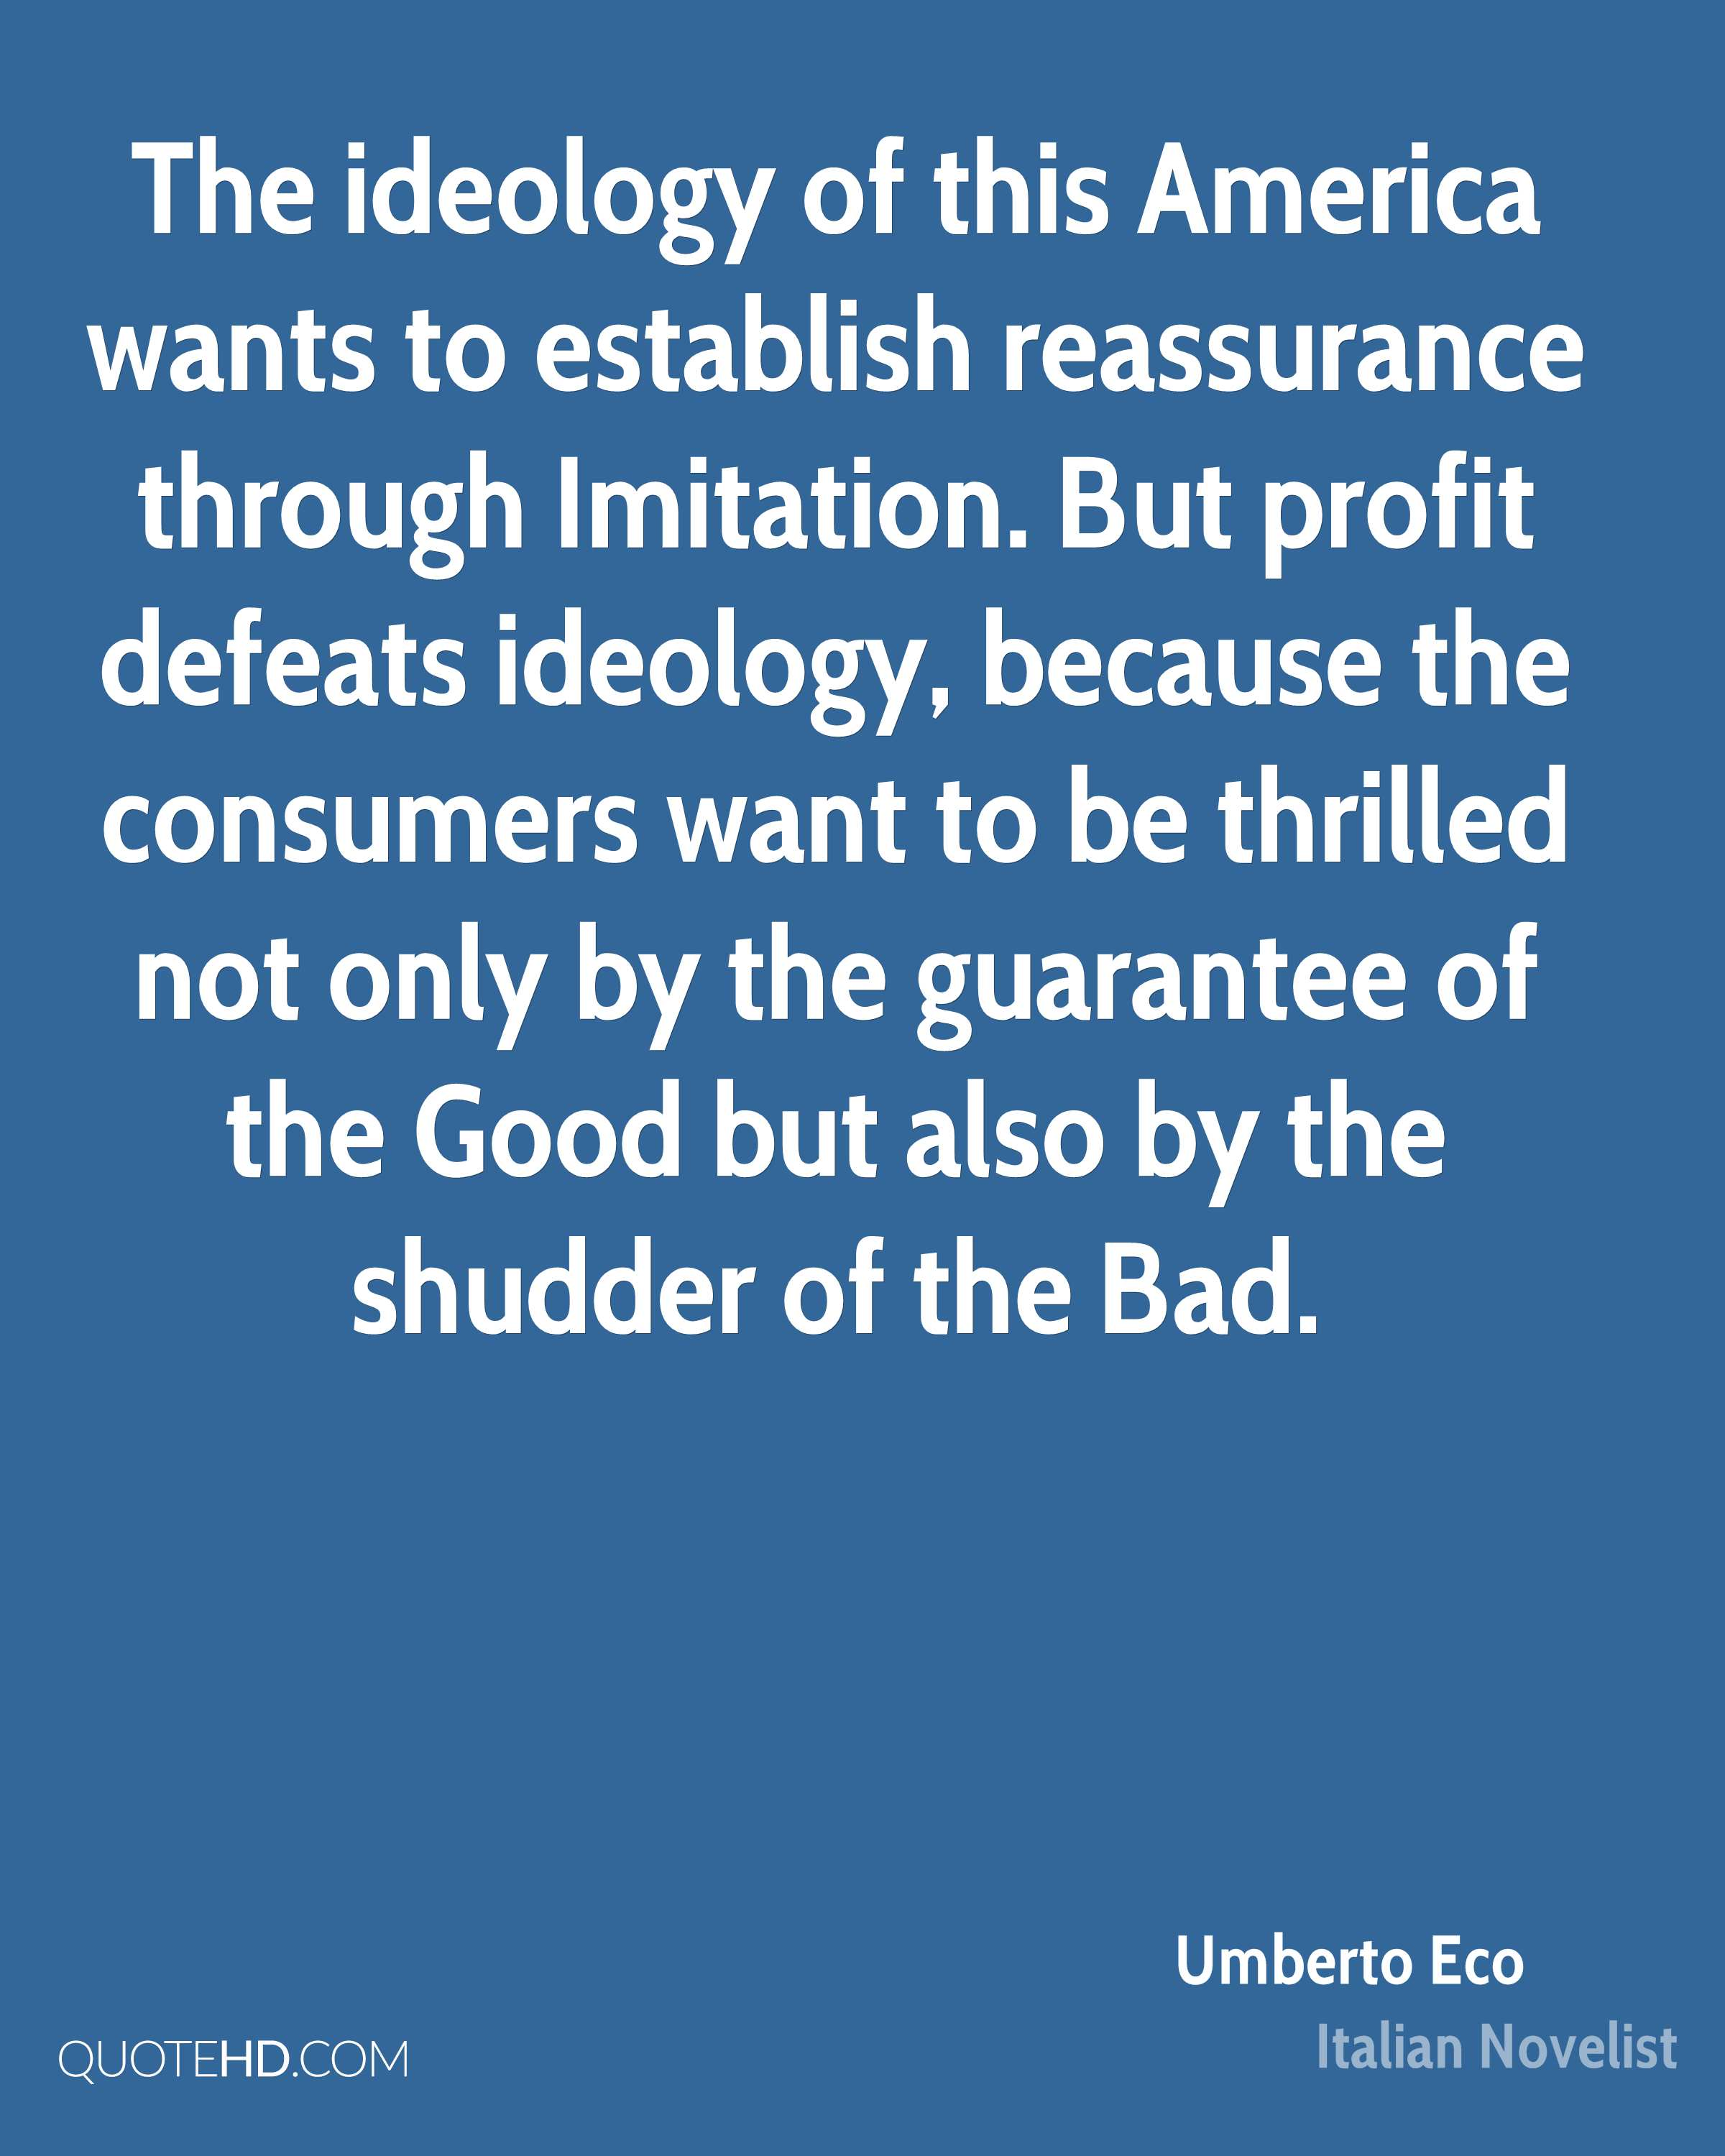 The ideology of this America wants to establish reassurance through Imitation. But profit defeats ideology, because the consumers want to be thrilled not only by the guarantee of the Good but also by the shudder of the Bad.